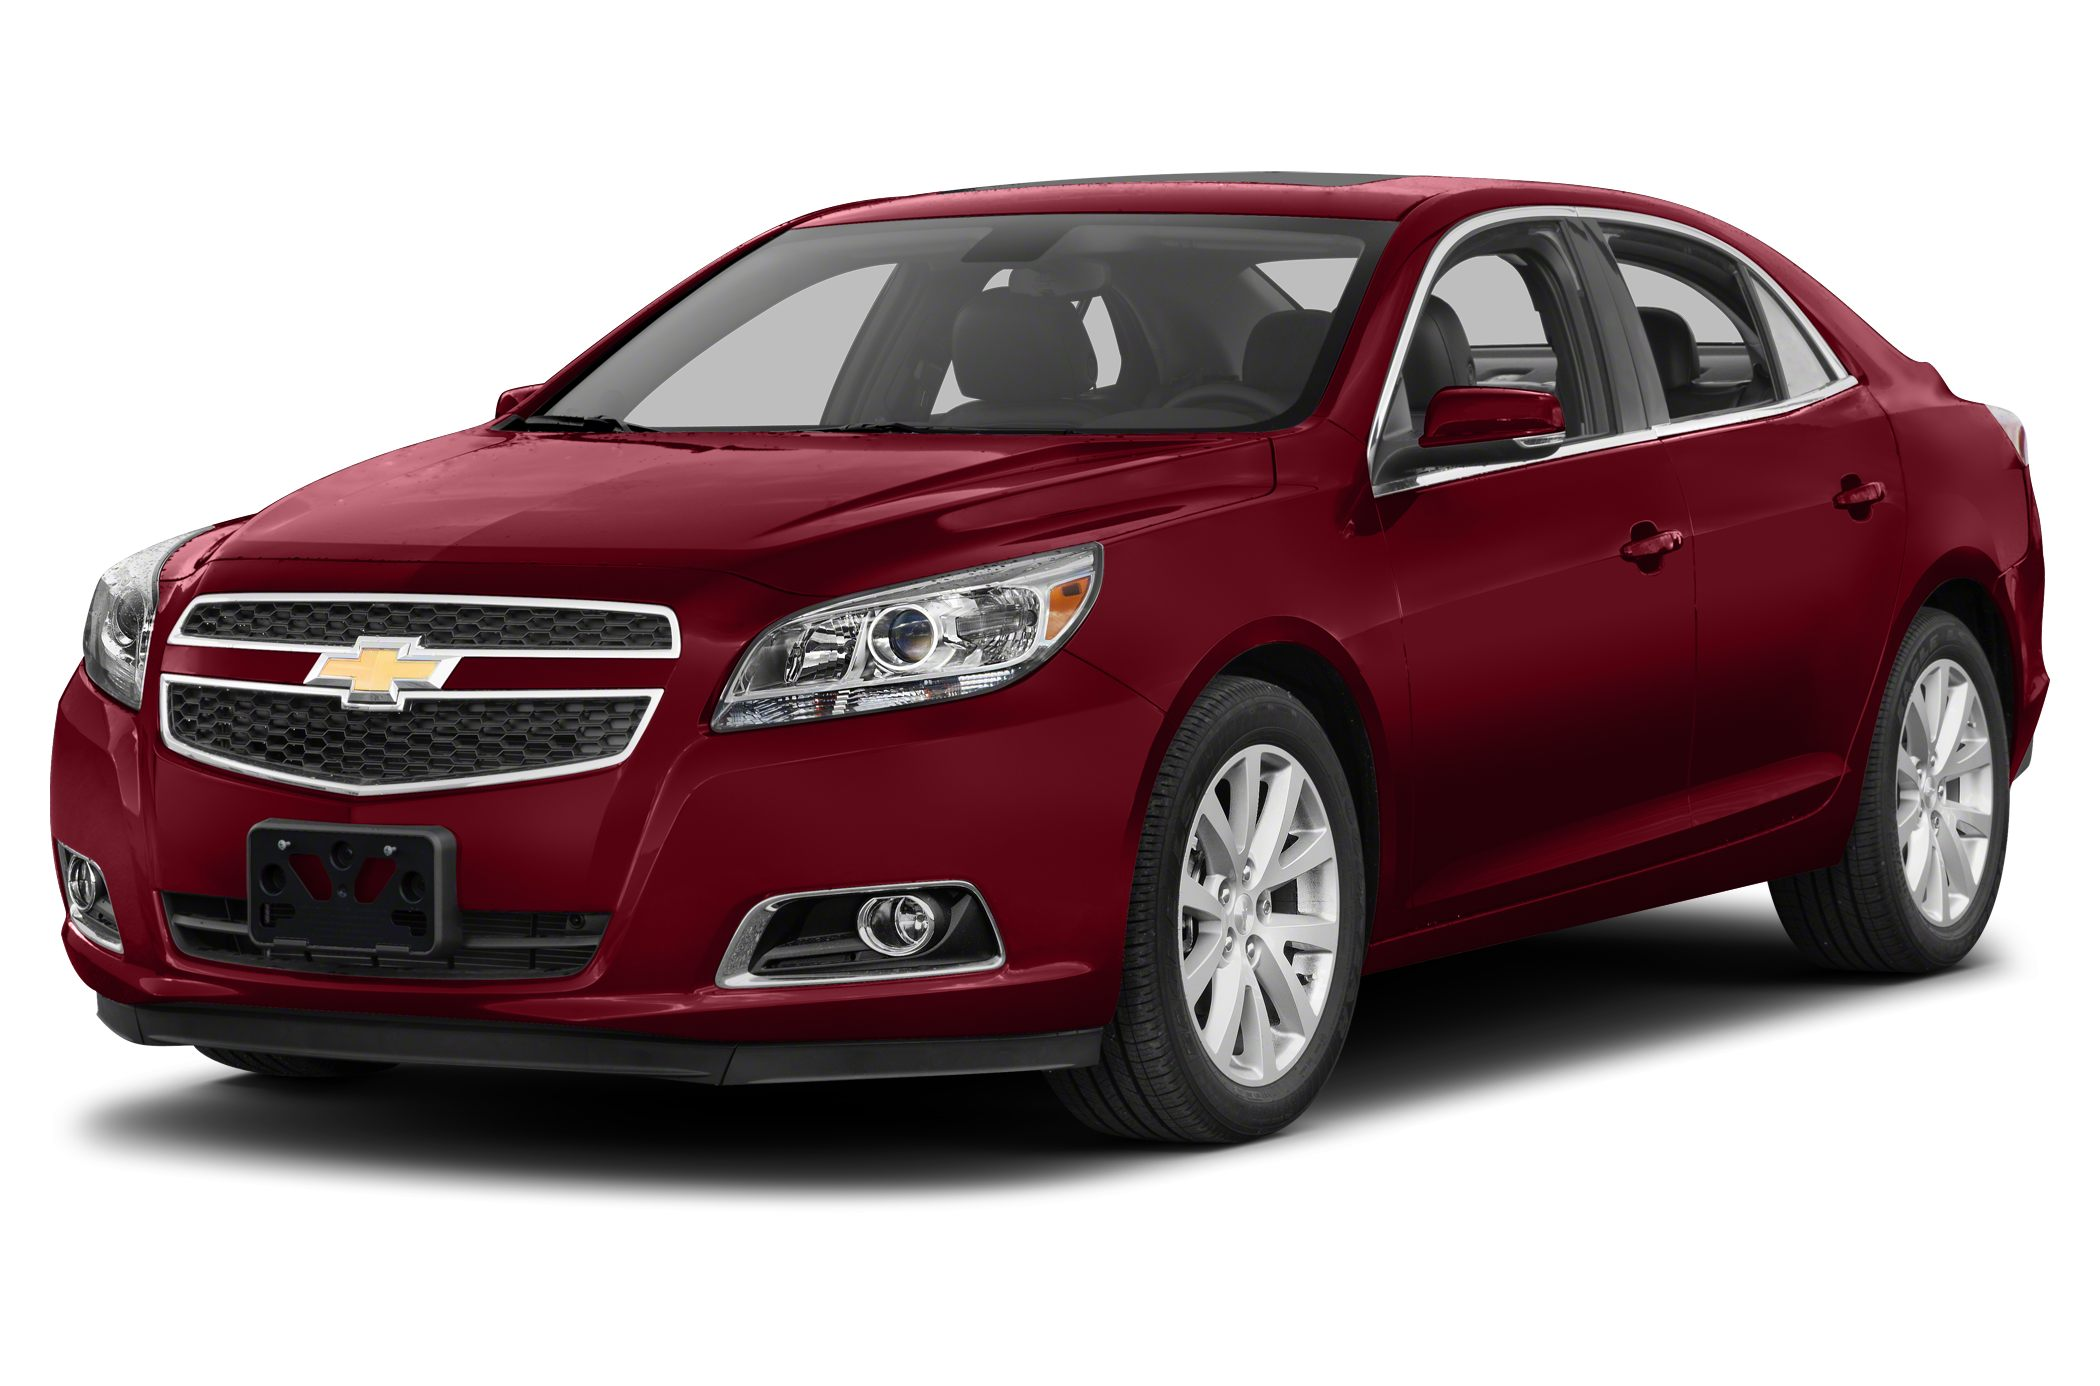 2013 Chevrolet Malibu LT w2LT New Arrival PRICED TO SELL QUICKLY Research suggests it will not